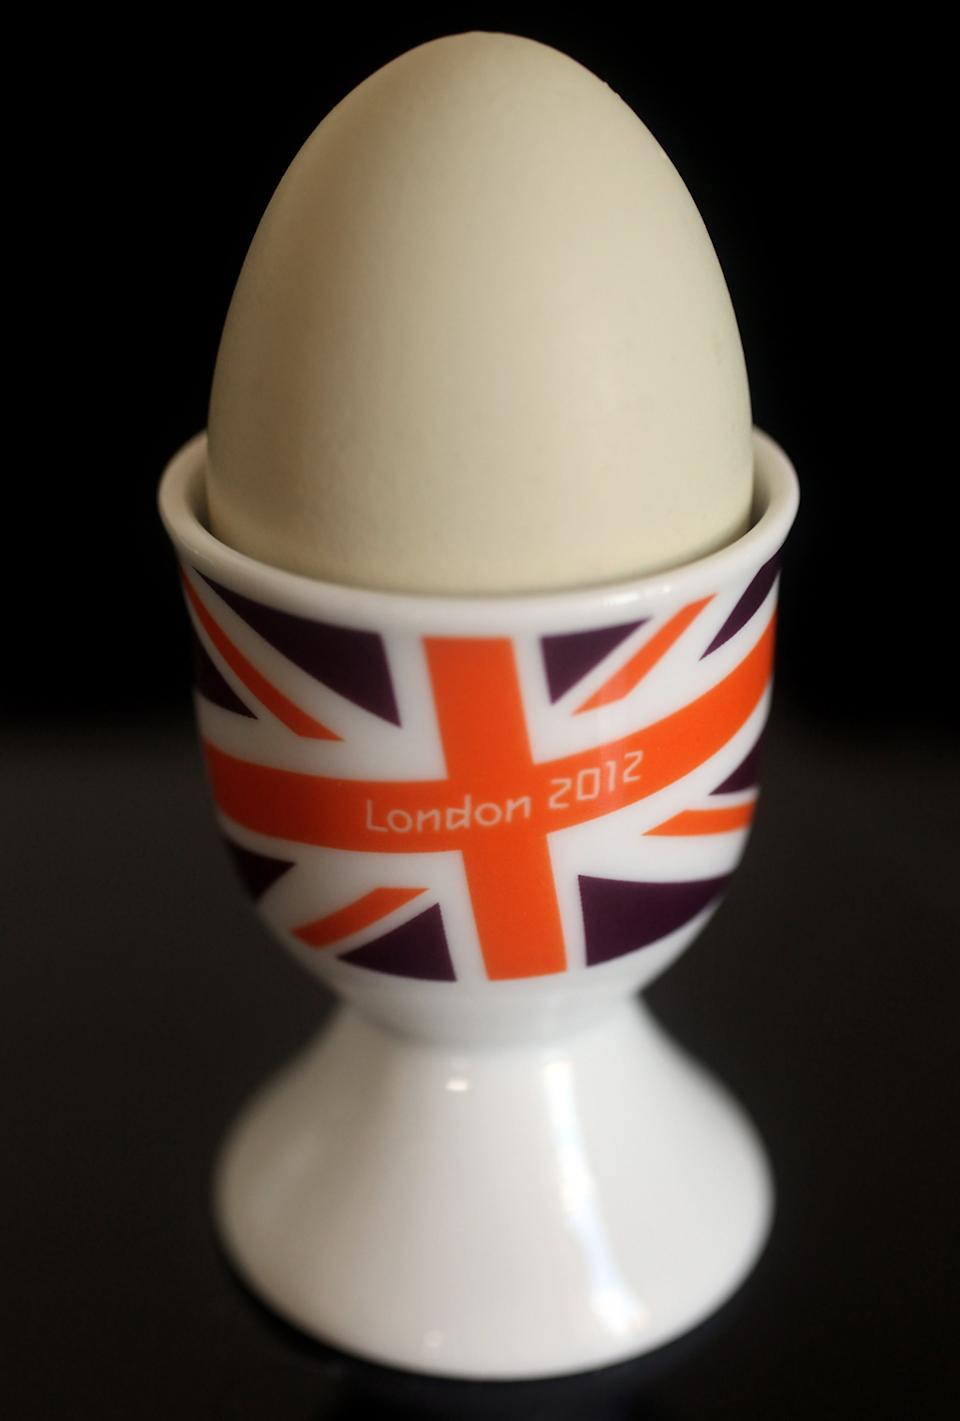 A London 2012 branded egg cup goes on display at the launch of the London Olympic Games official merchandise on July 30, 2010 in London, England. (Photo by Oli Scarff/Getty Images)